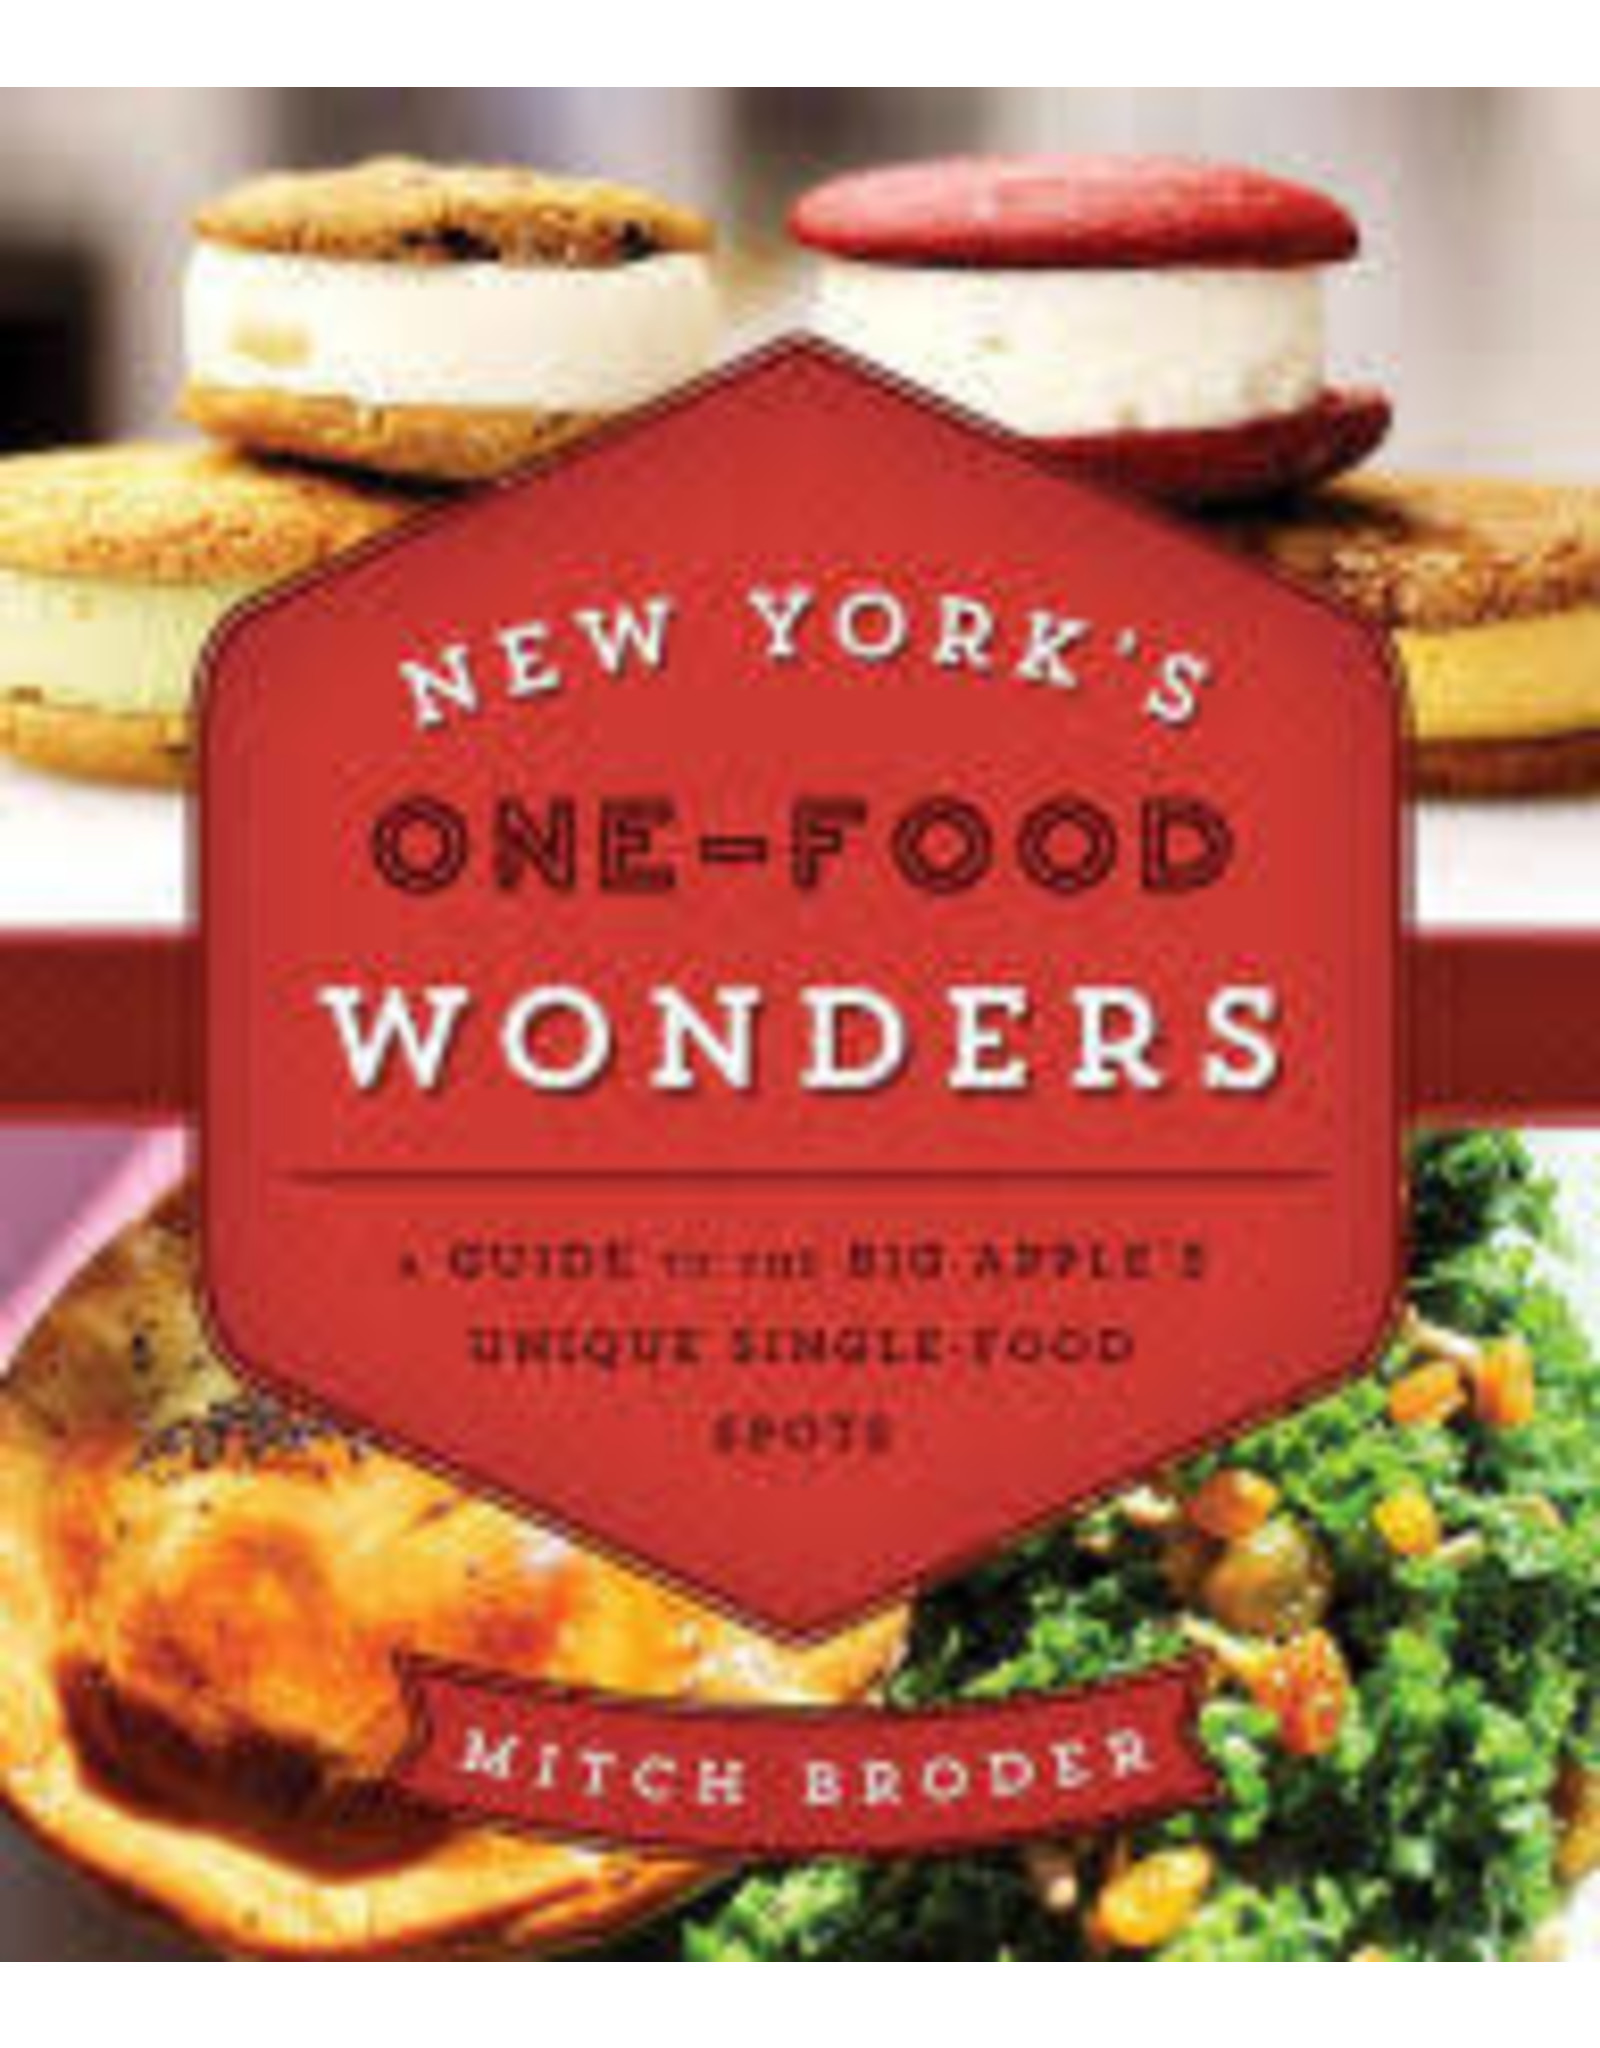 National Book Network New York's One-Food Wonders